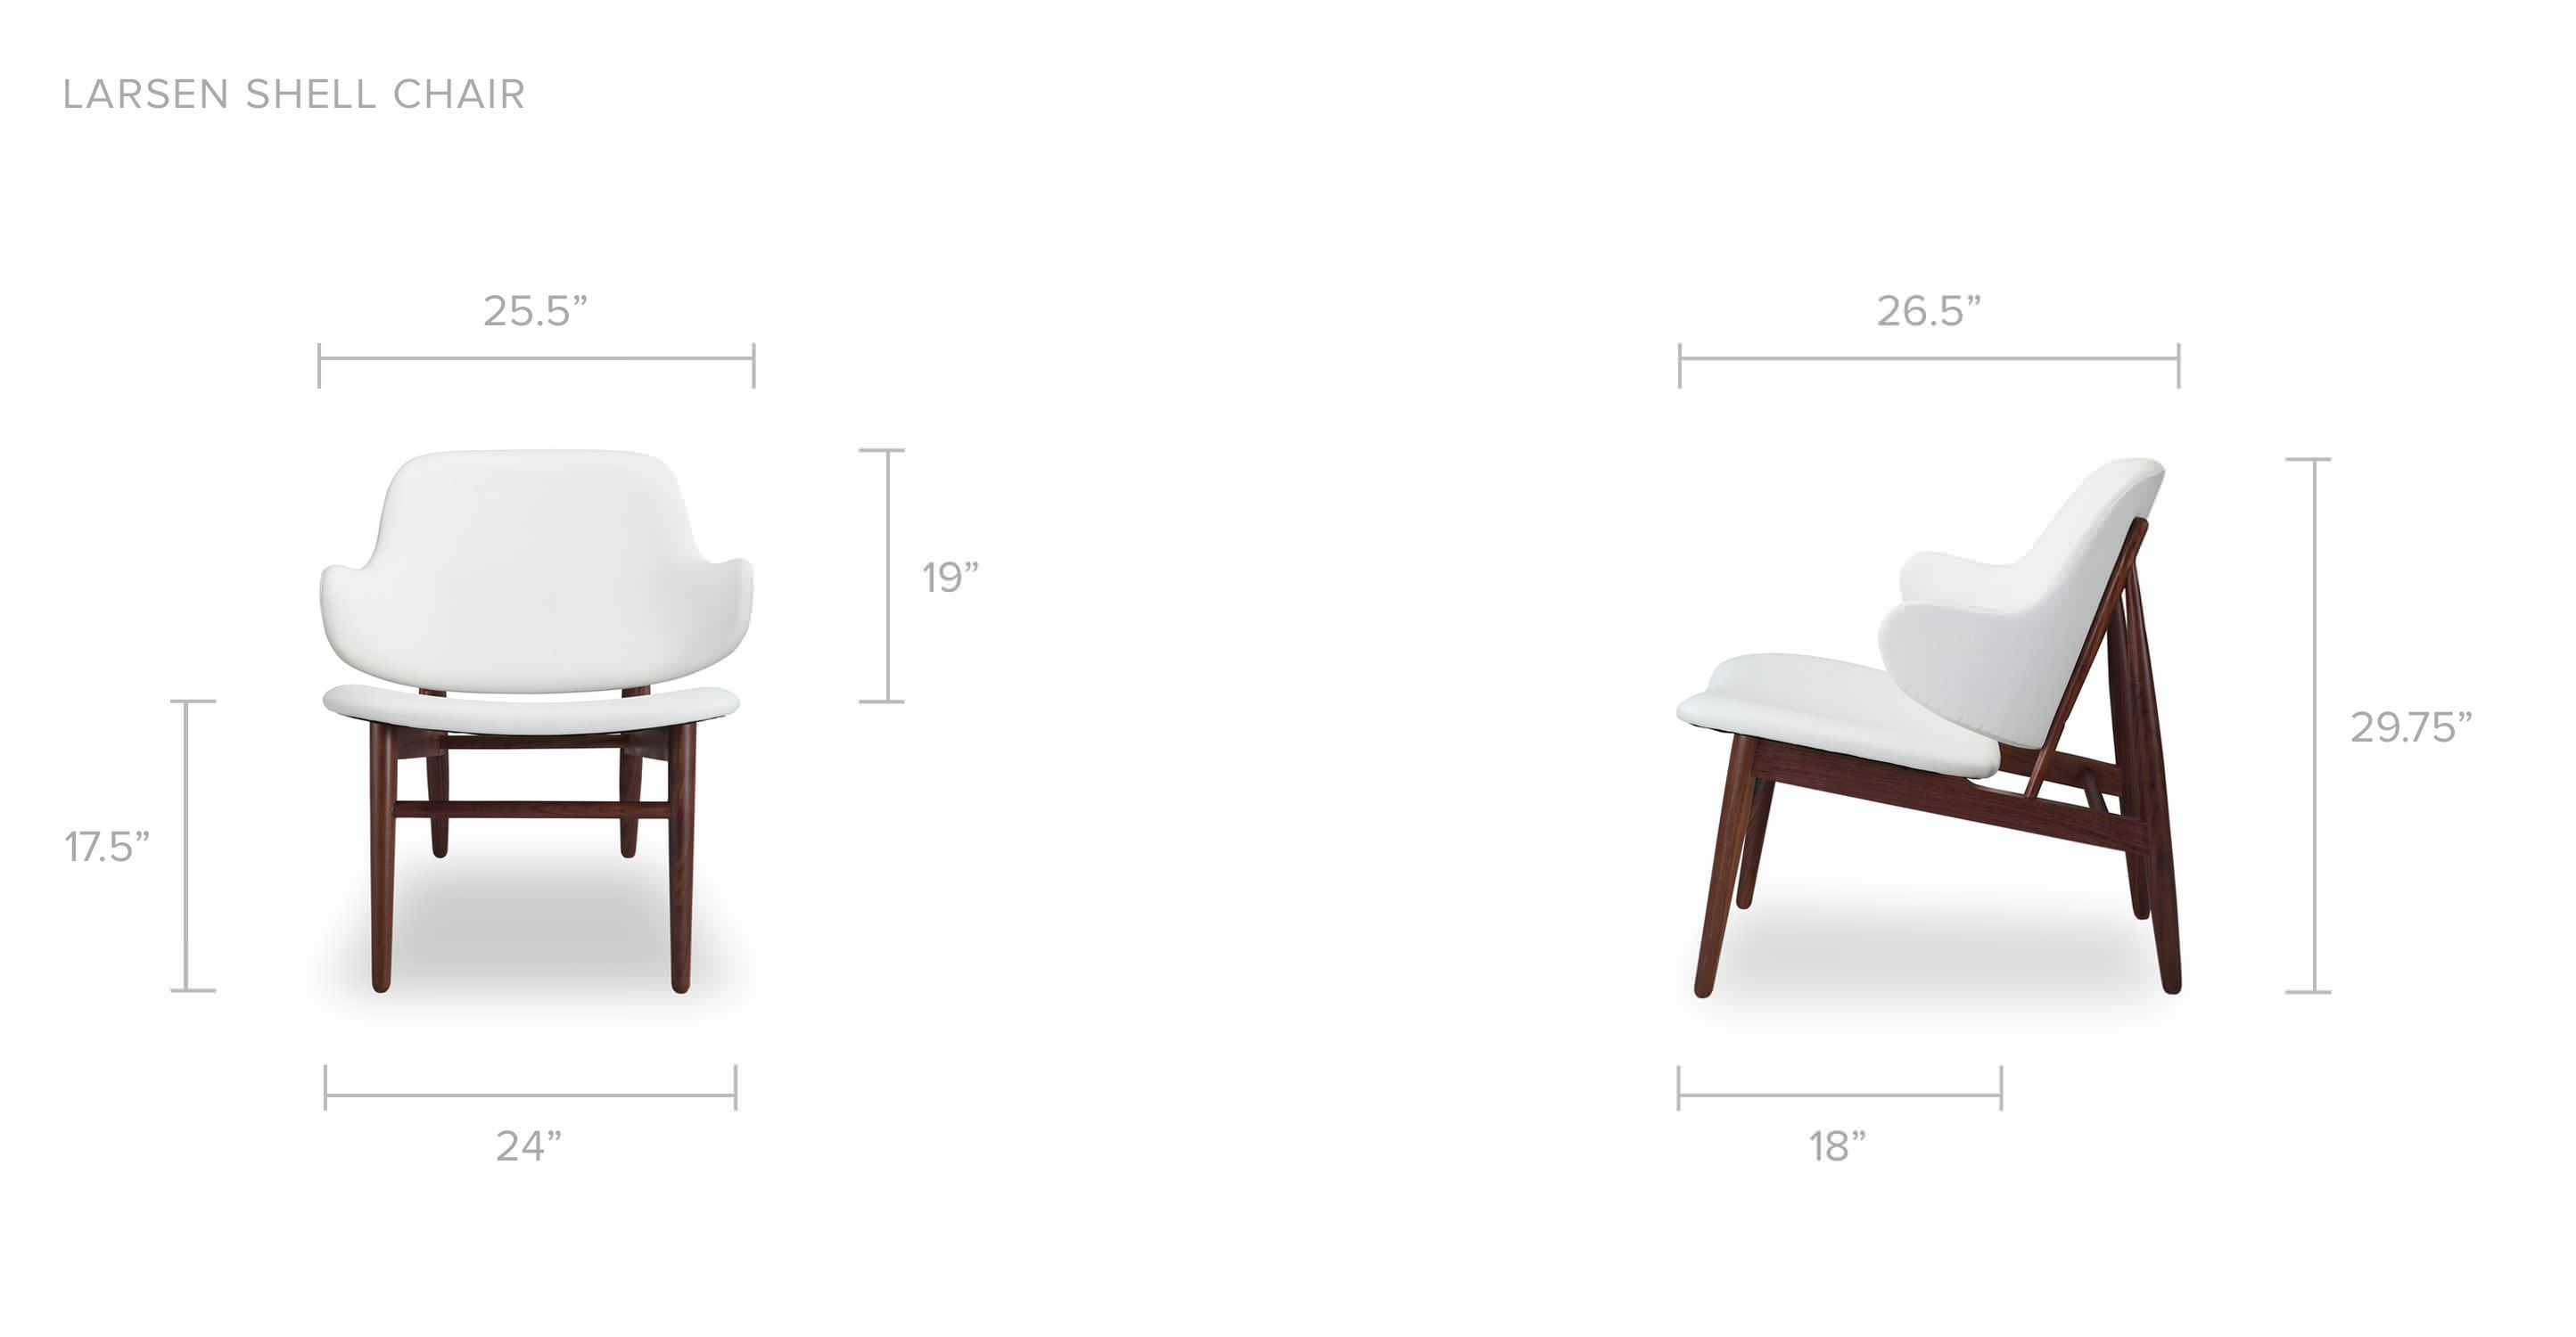 drawings-larsen-chair.jpg